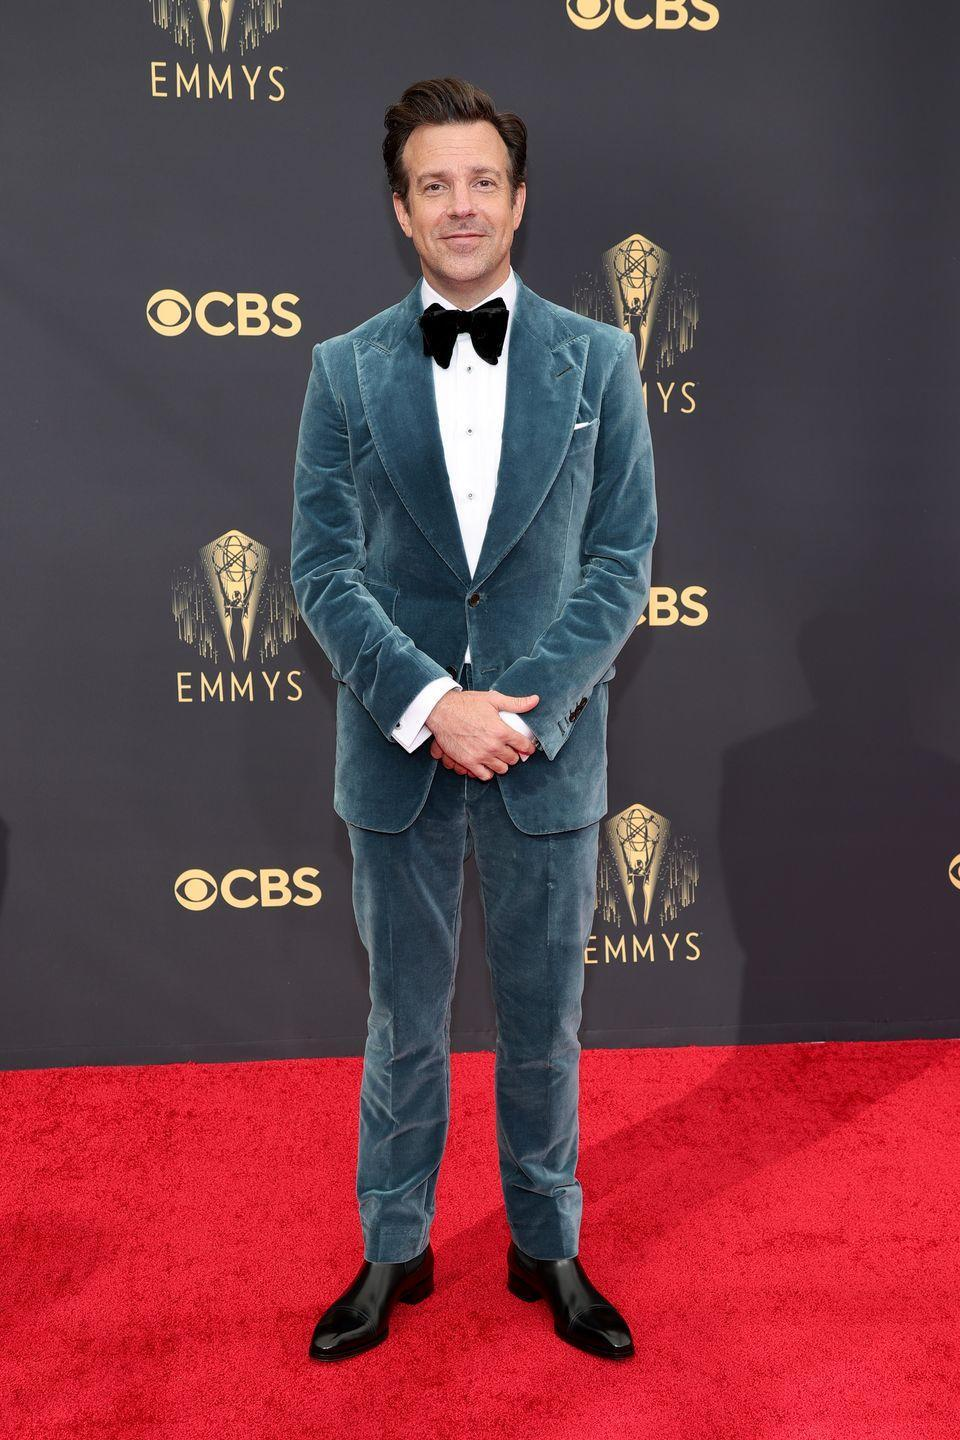 <p>From the cut to the color to the texture, Sudeikis's suit delivers on all fronts.</p><p><em>In Tom Ford</em></p>